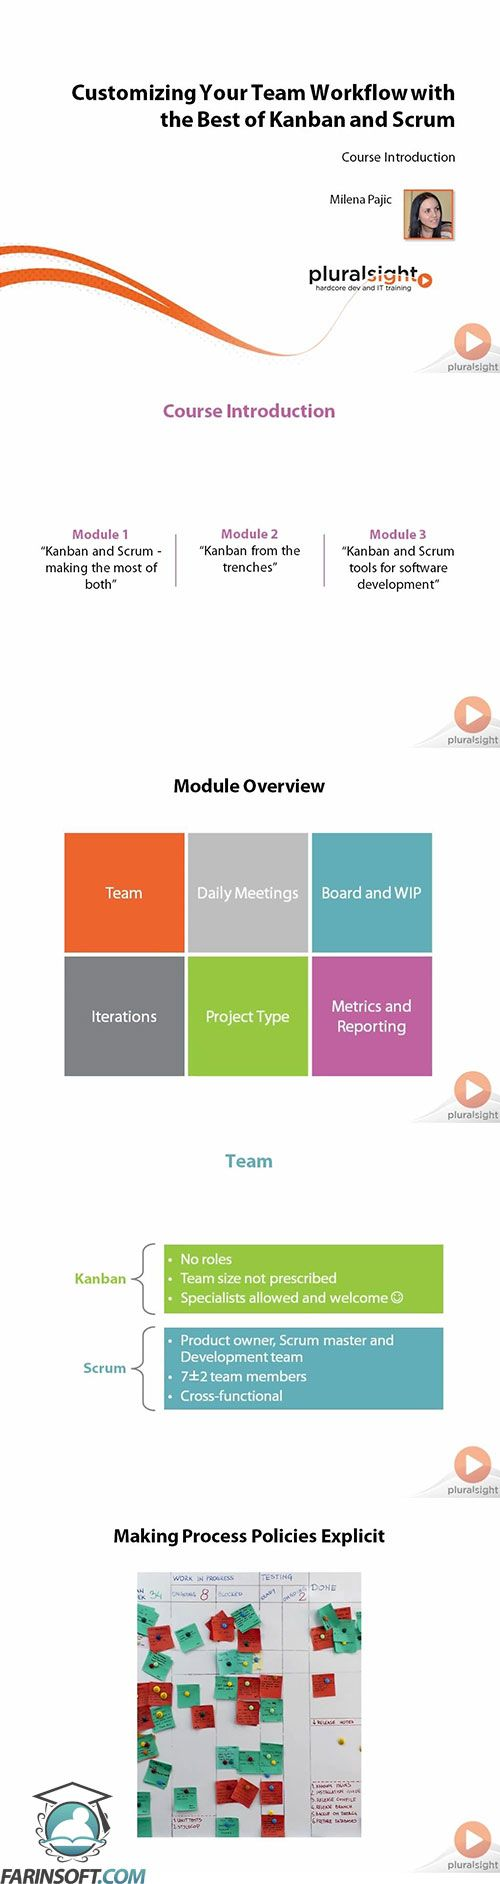 Customizing-Your-Team-Workflow-with-the-Best-of-Kanban-and-Scrum.